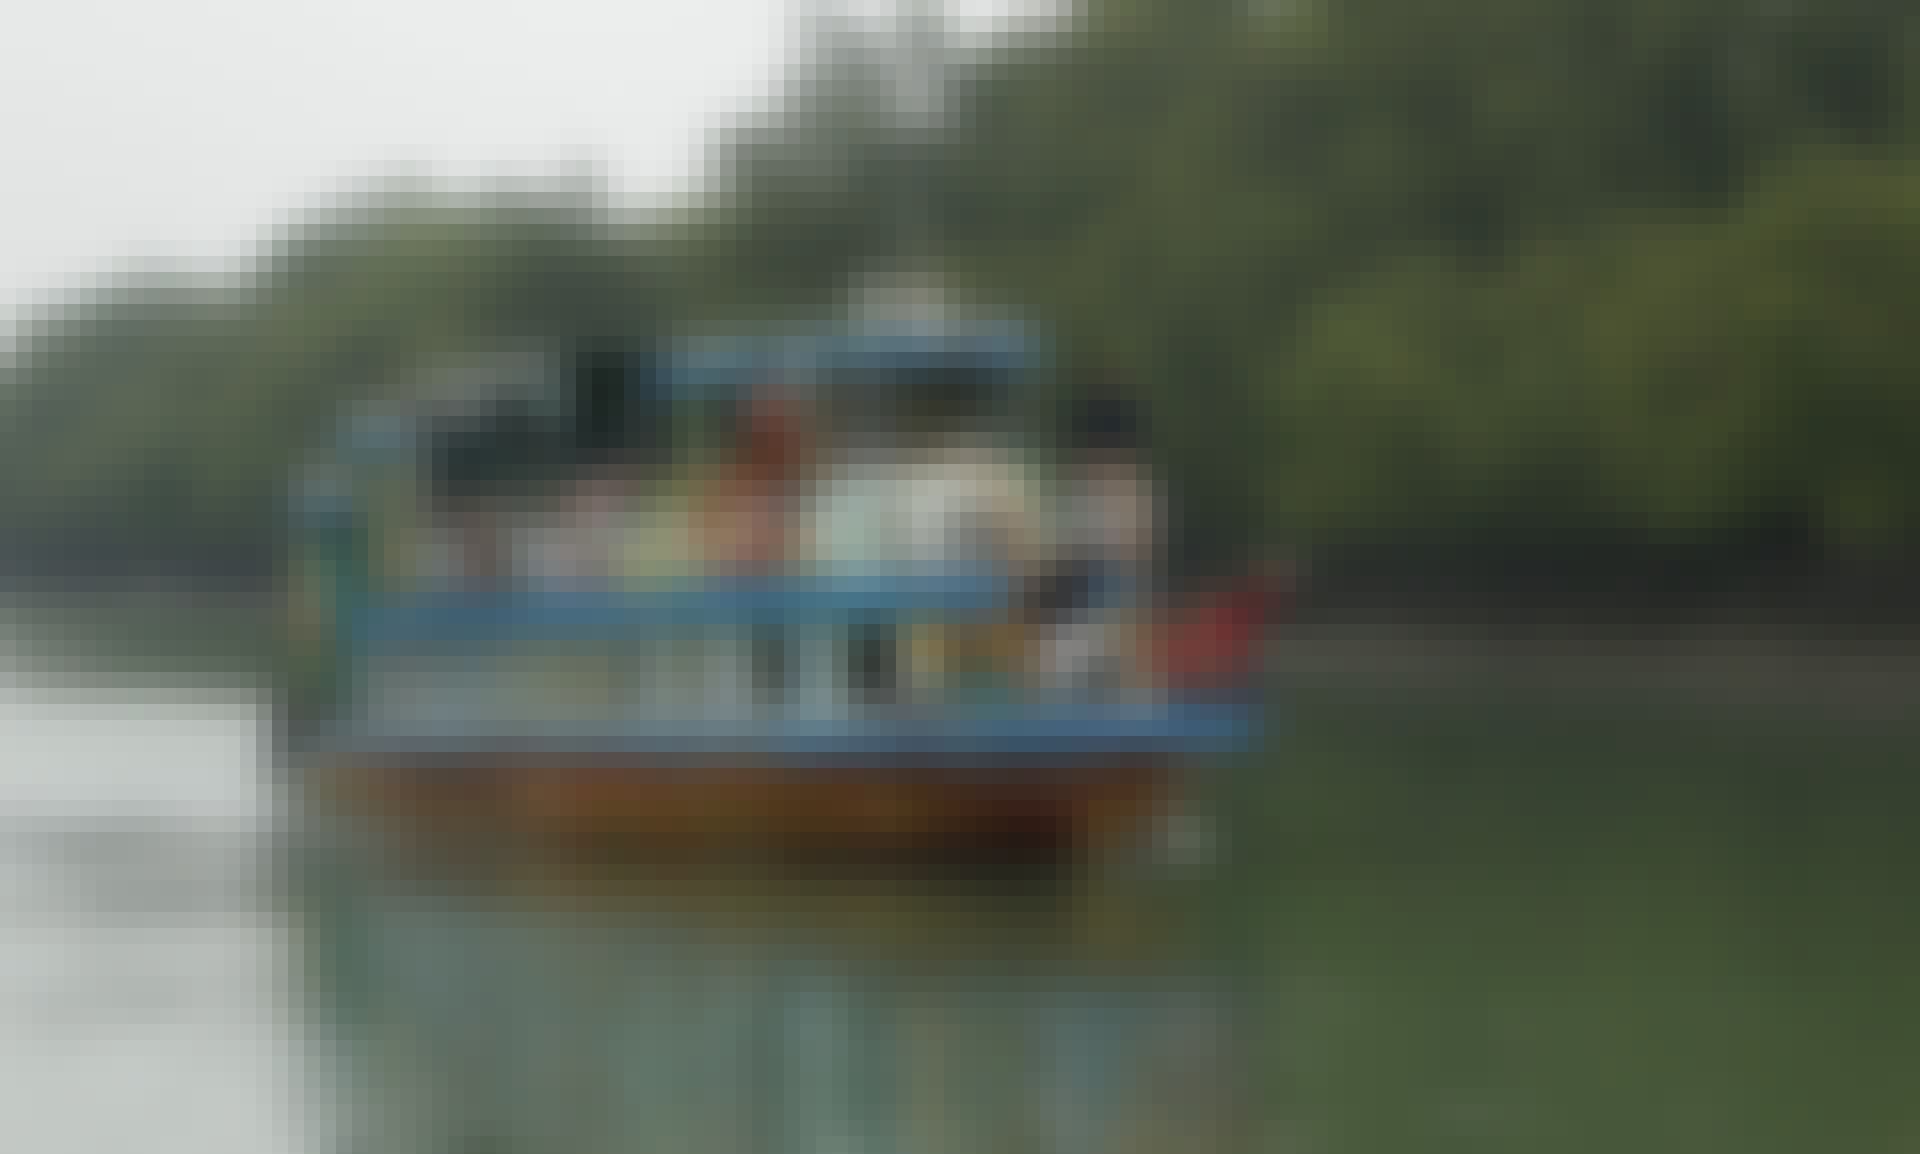 Sundarban Tour - World Largest Mangrove Forest with Mini Luxurious Tourist Vessel